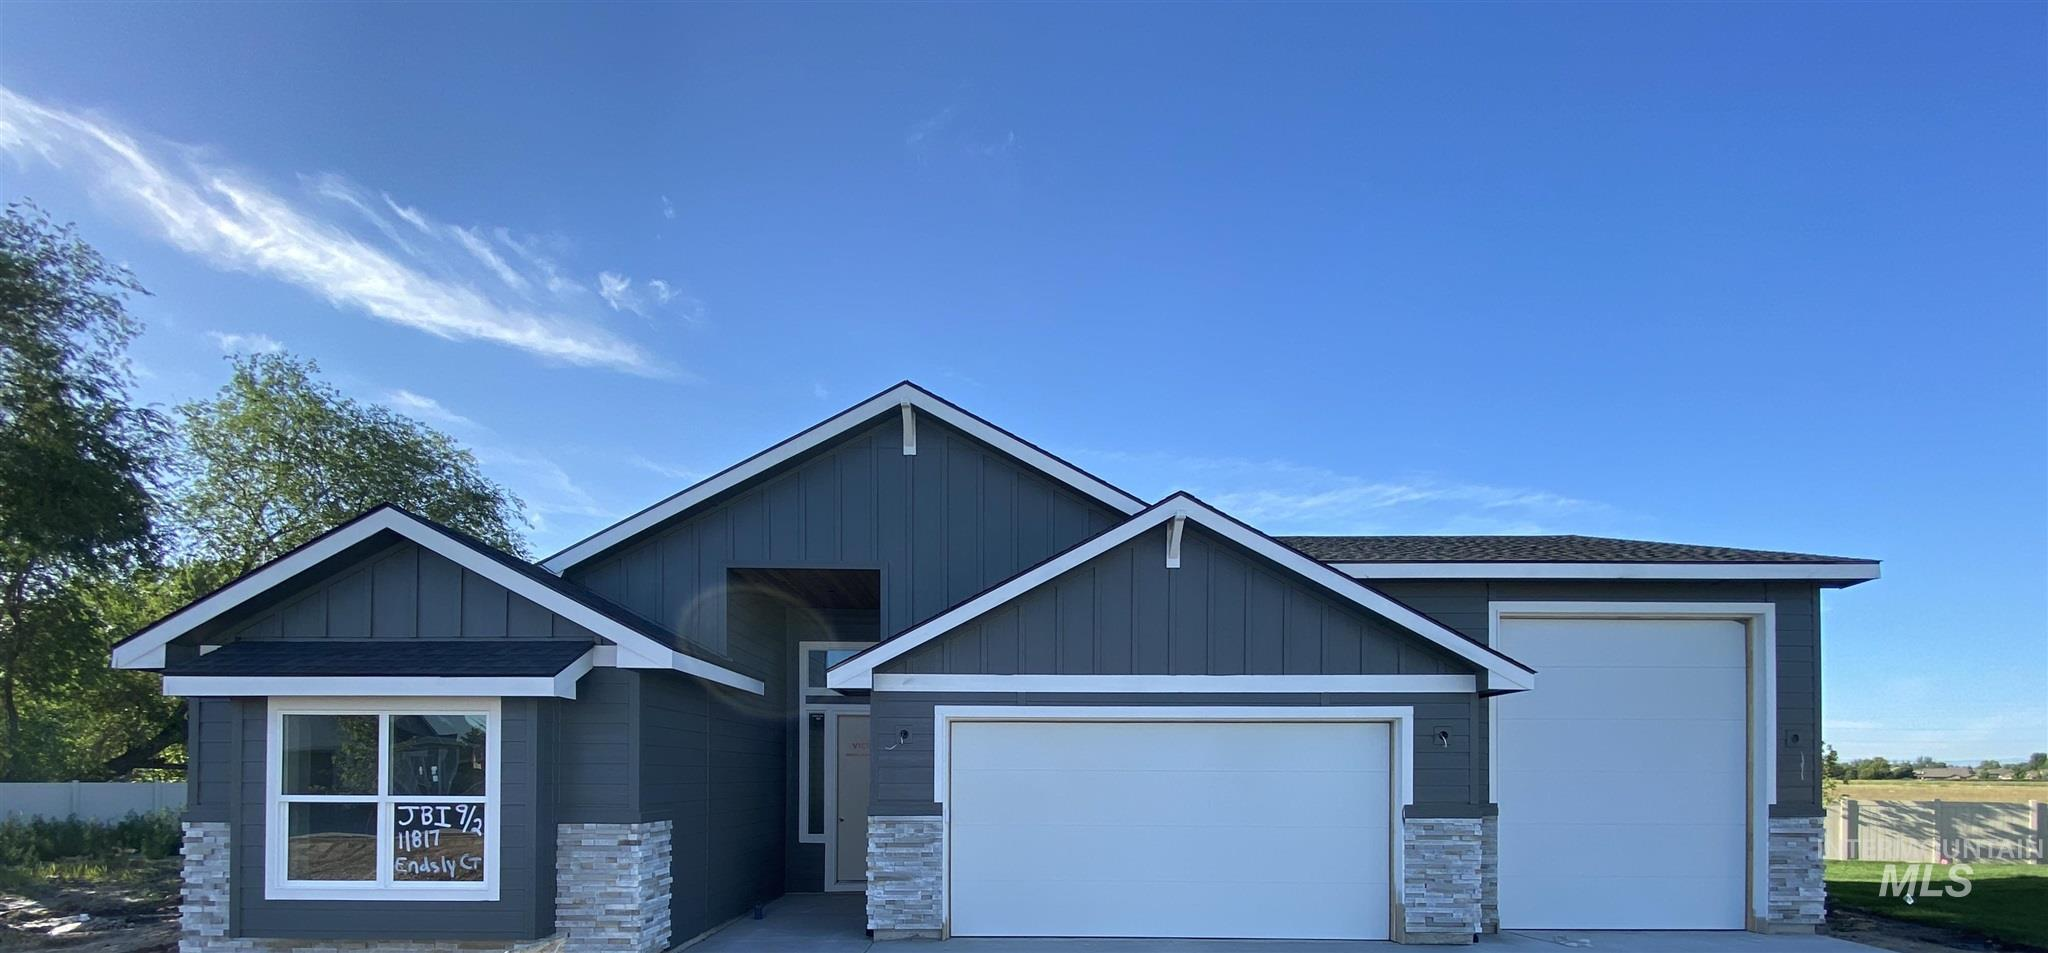 3923 Palisade Avenue Property Photo - Caldwell, ID real estate listing